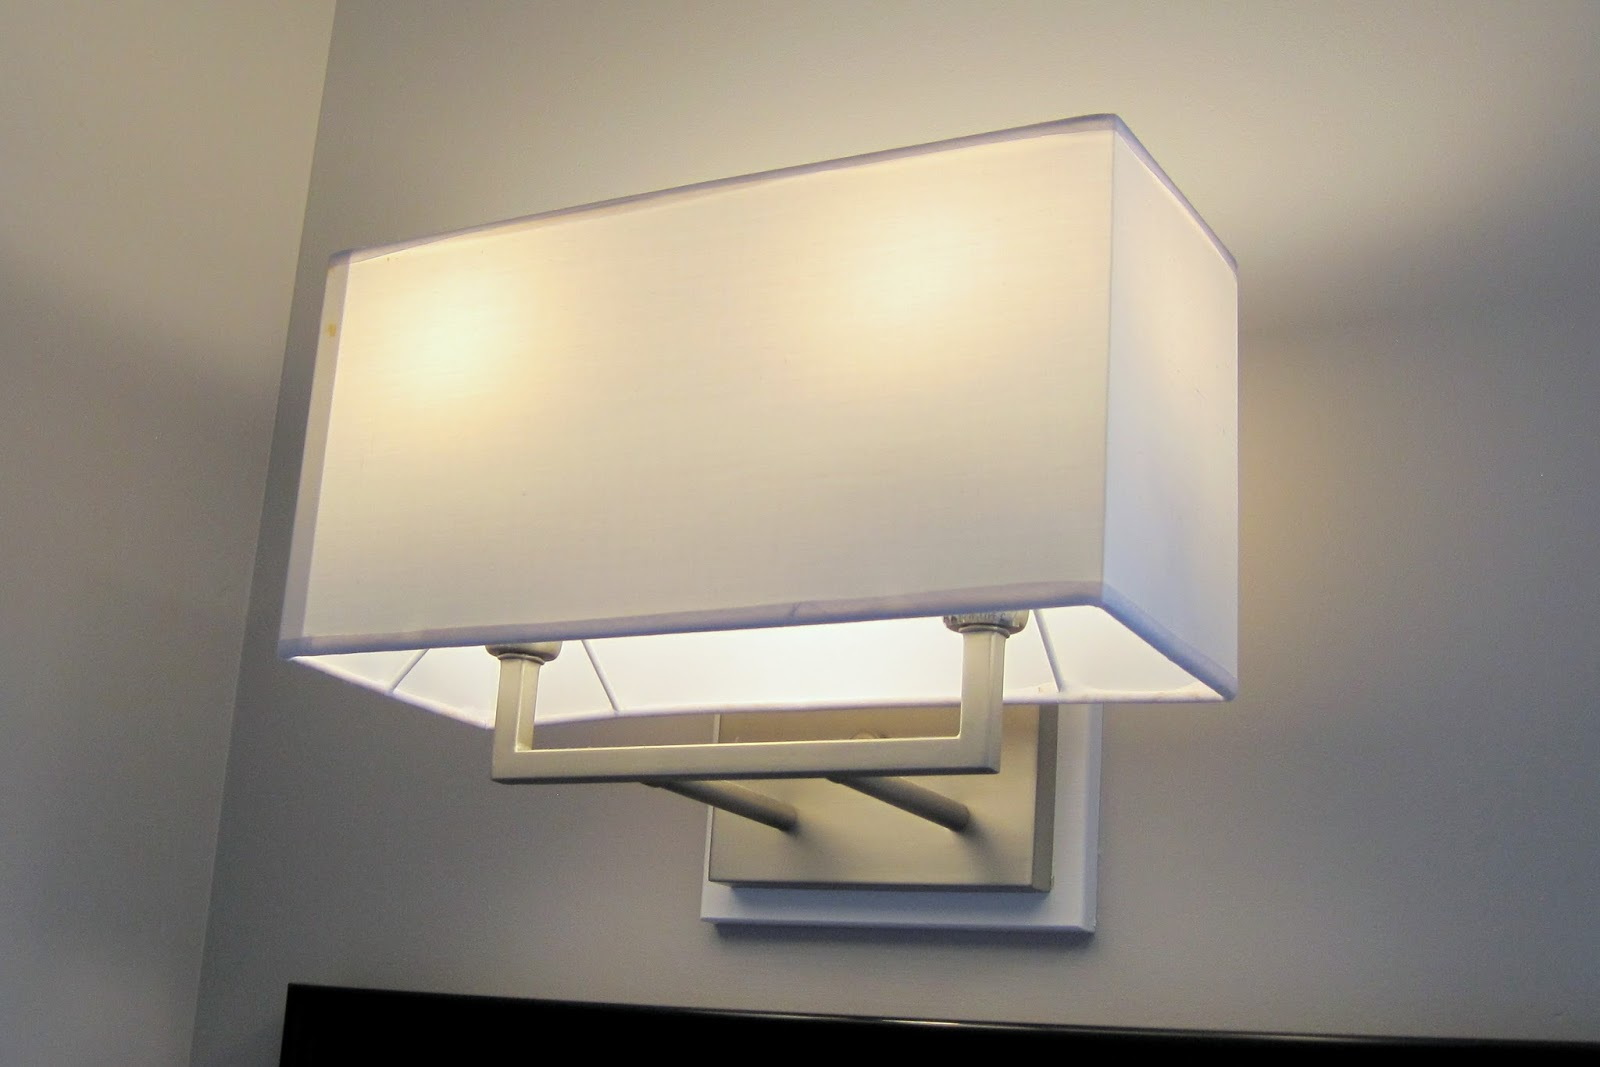 White porcelain contemporary bathroom light fixture 6778 for Light fixtures for bathrooms